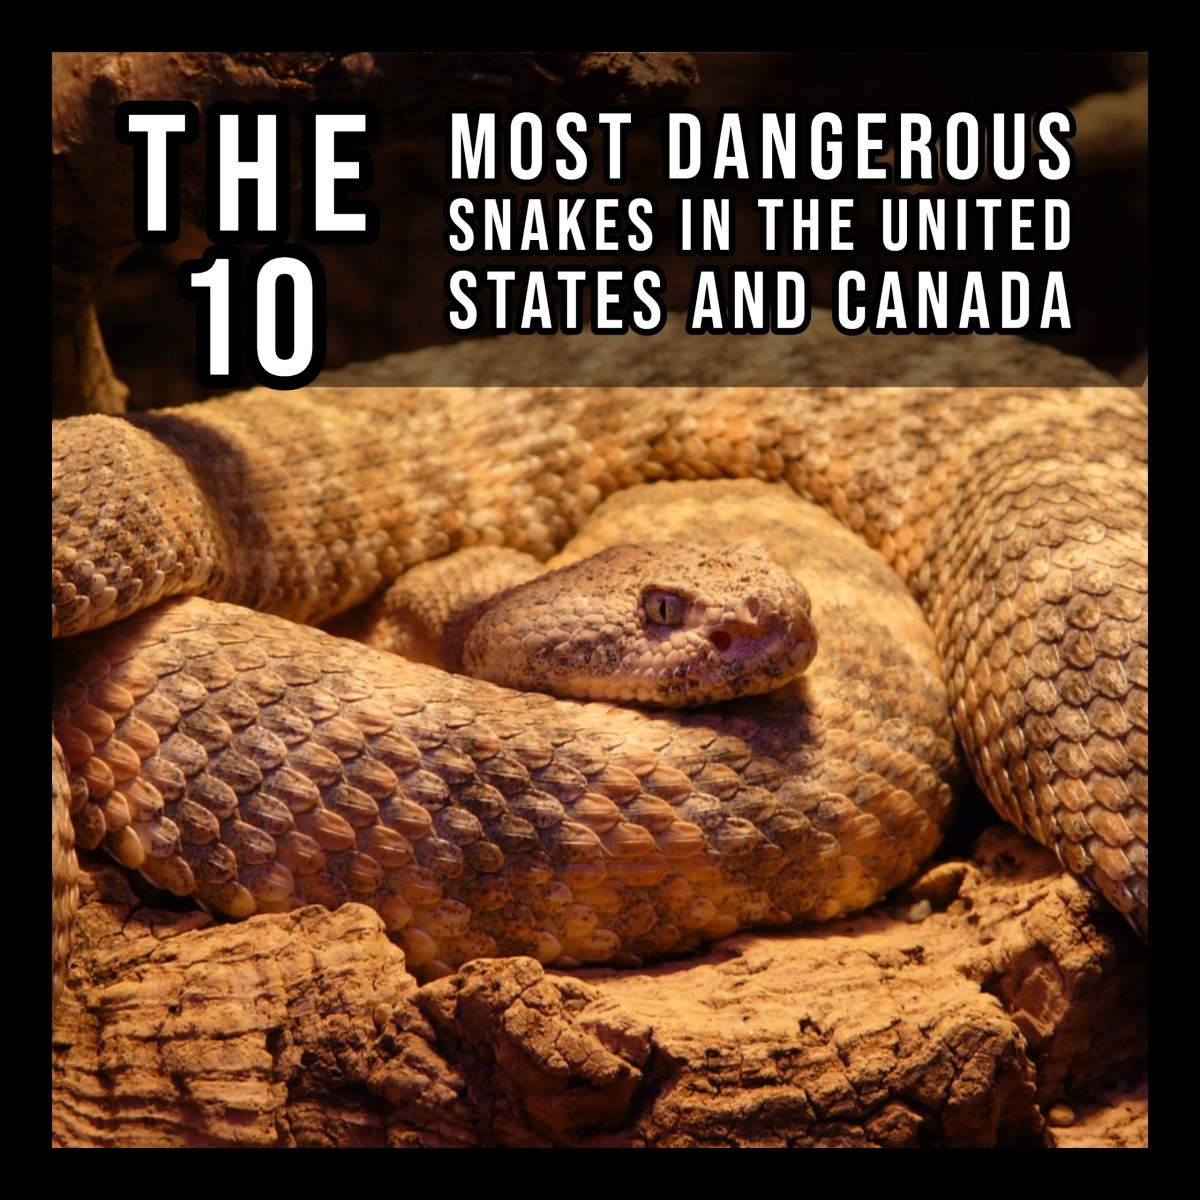 Canada and Northern Mexico Venomous Reptiles of the United States Crotalus